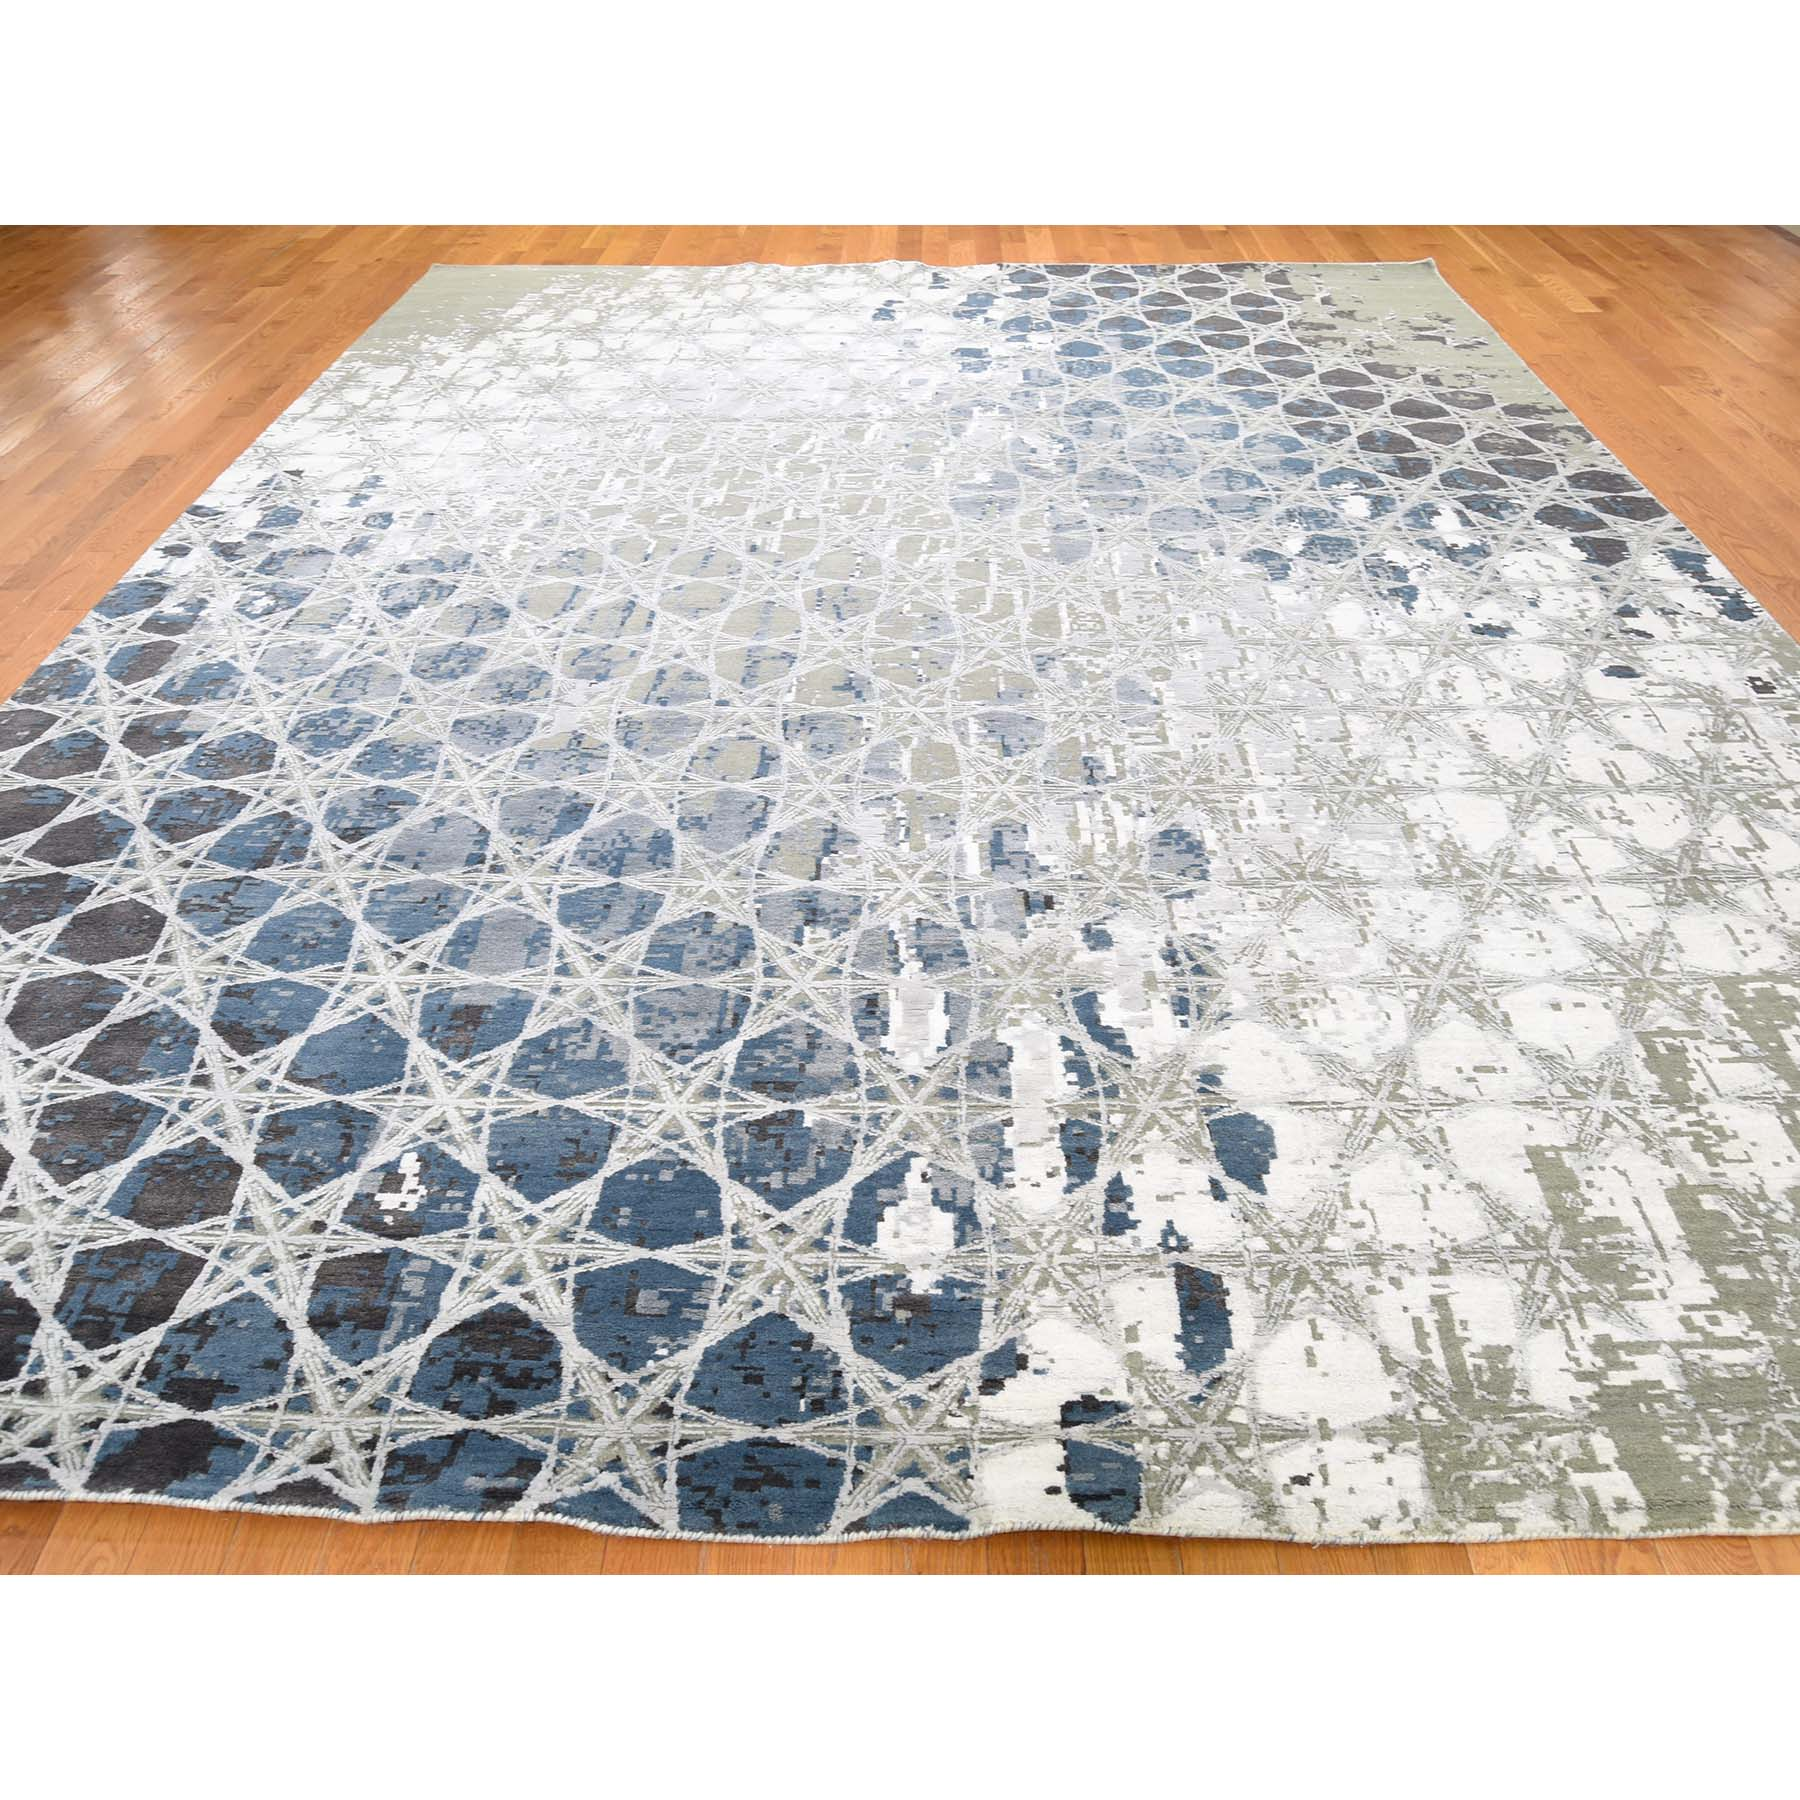 """10'x14'1"""" THE HONEYCOMB Hand-Knotted Wool and Silk Award Winning Design Oriental Rug"""